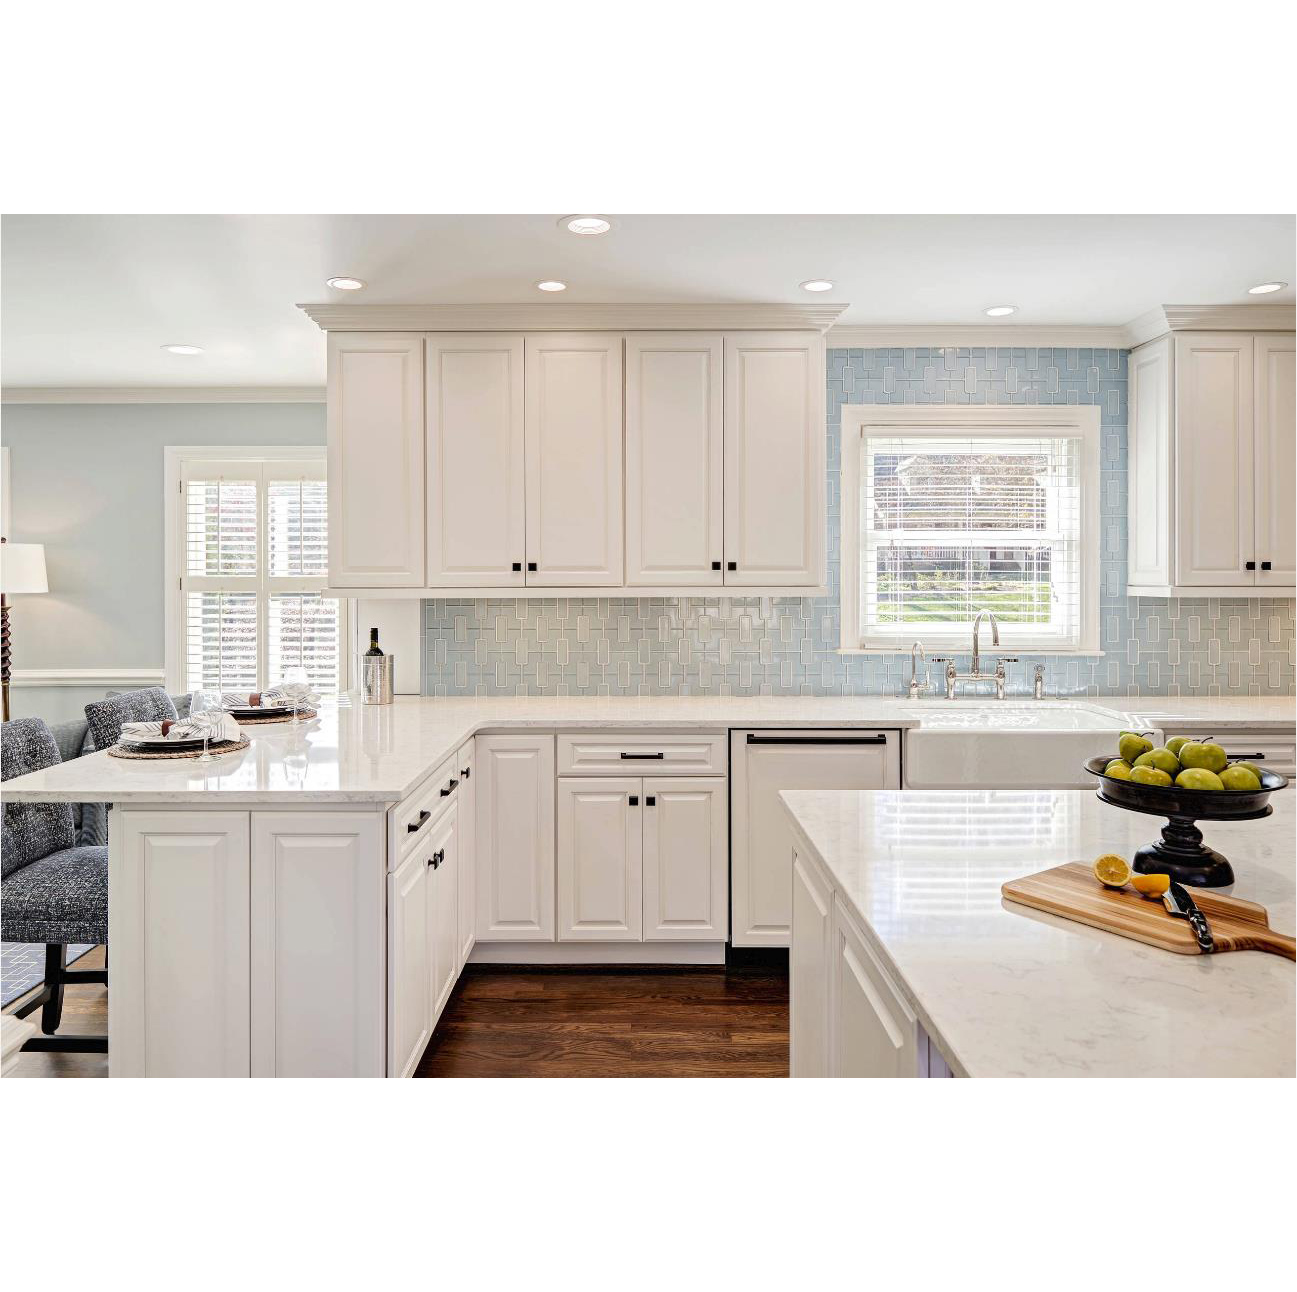 AisDecor top-selling gray cabinets kitchen wholesale-1